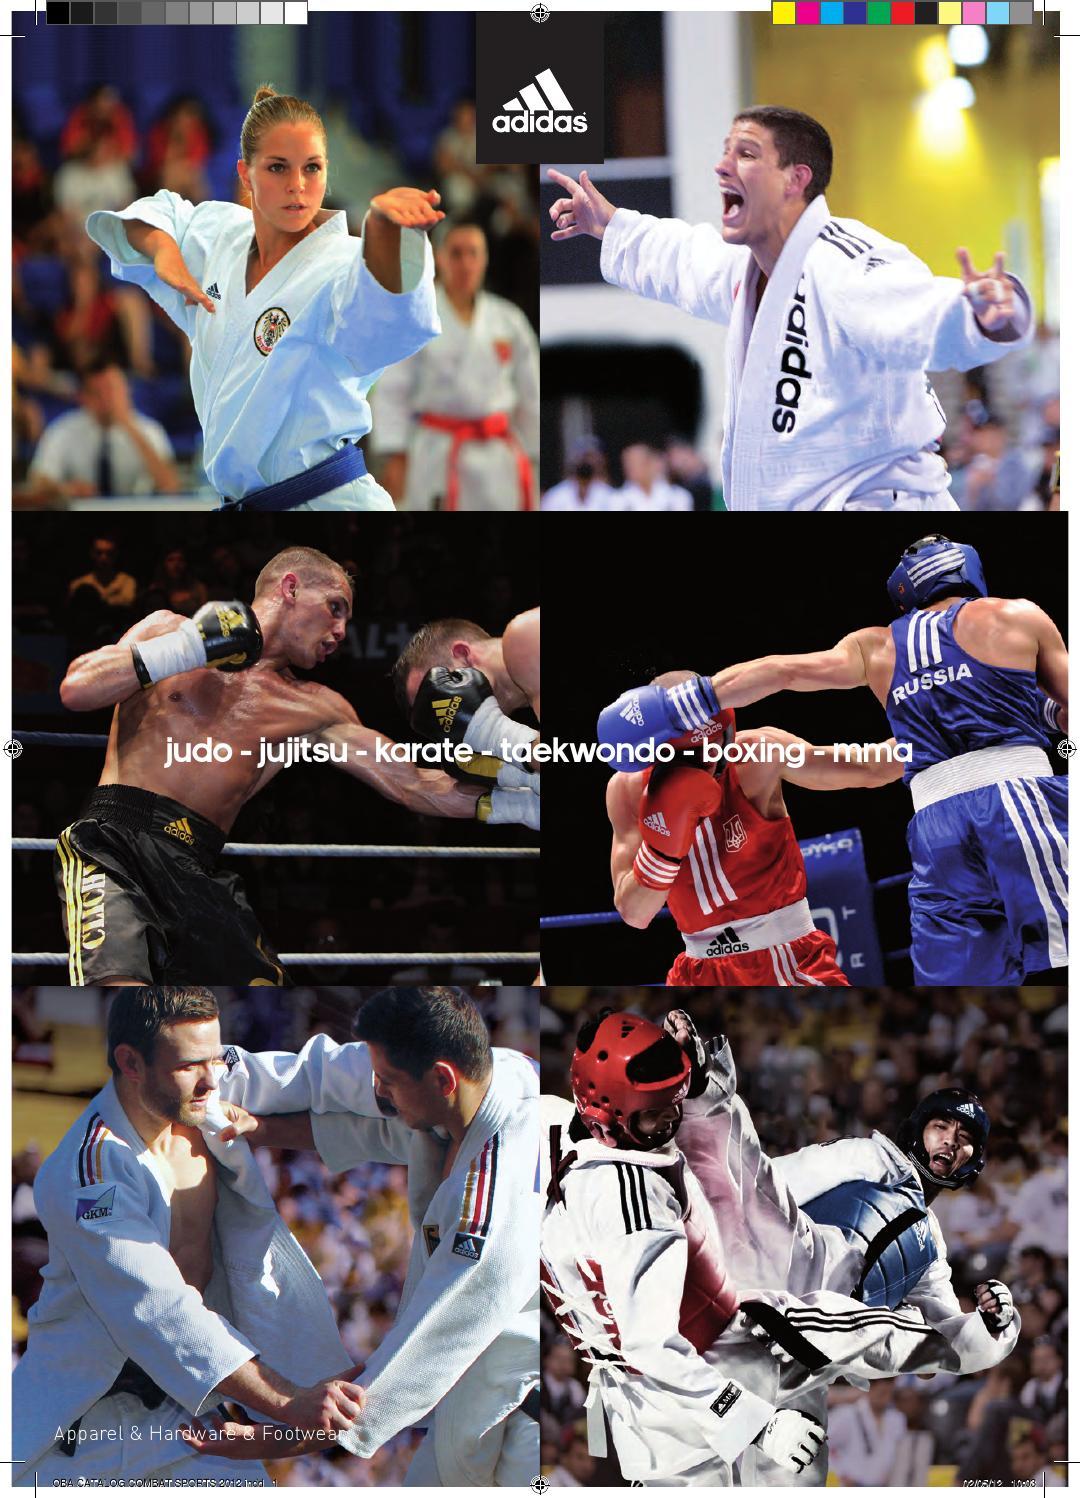 8d777d1b487b4 adidas combat sports by Sports For All - adidas combat sports - issuu